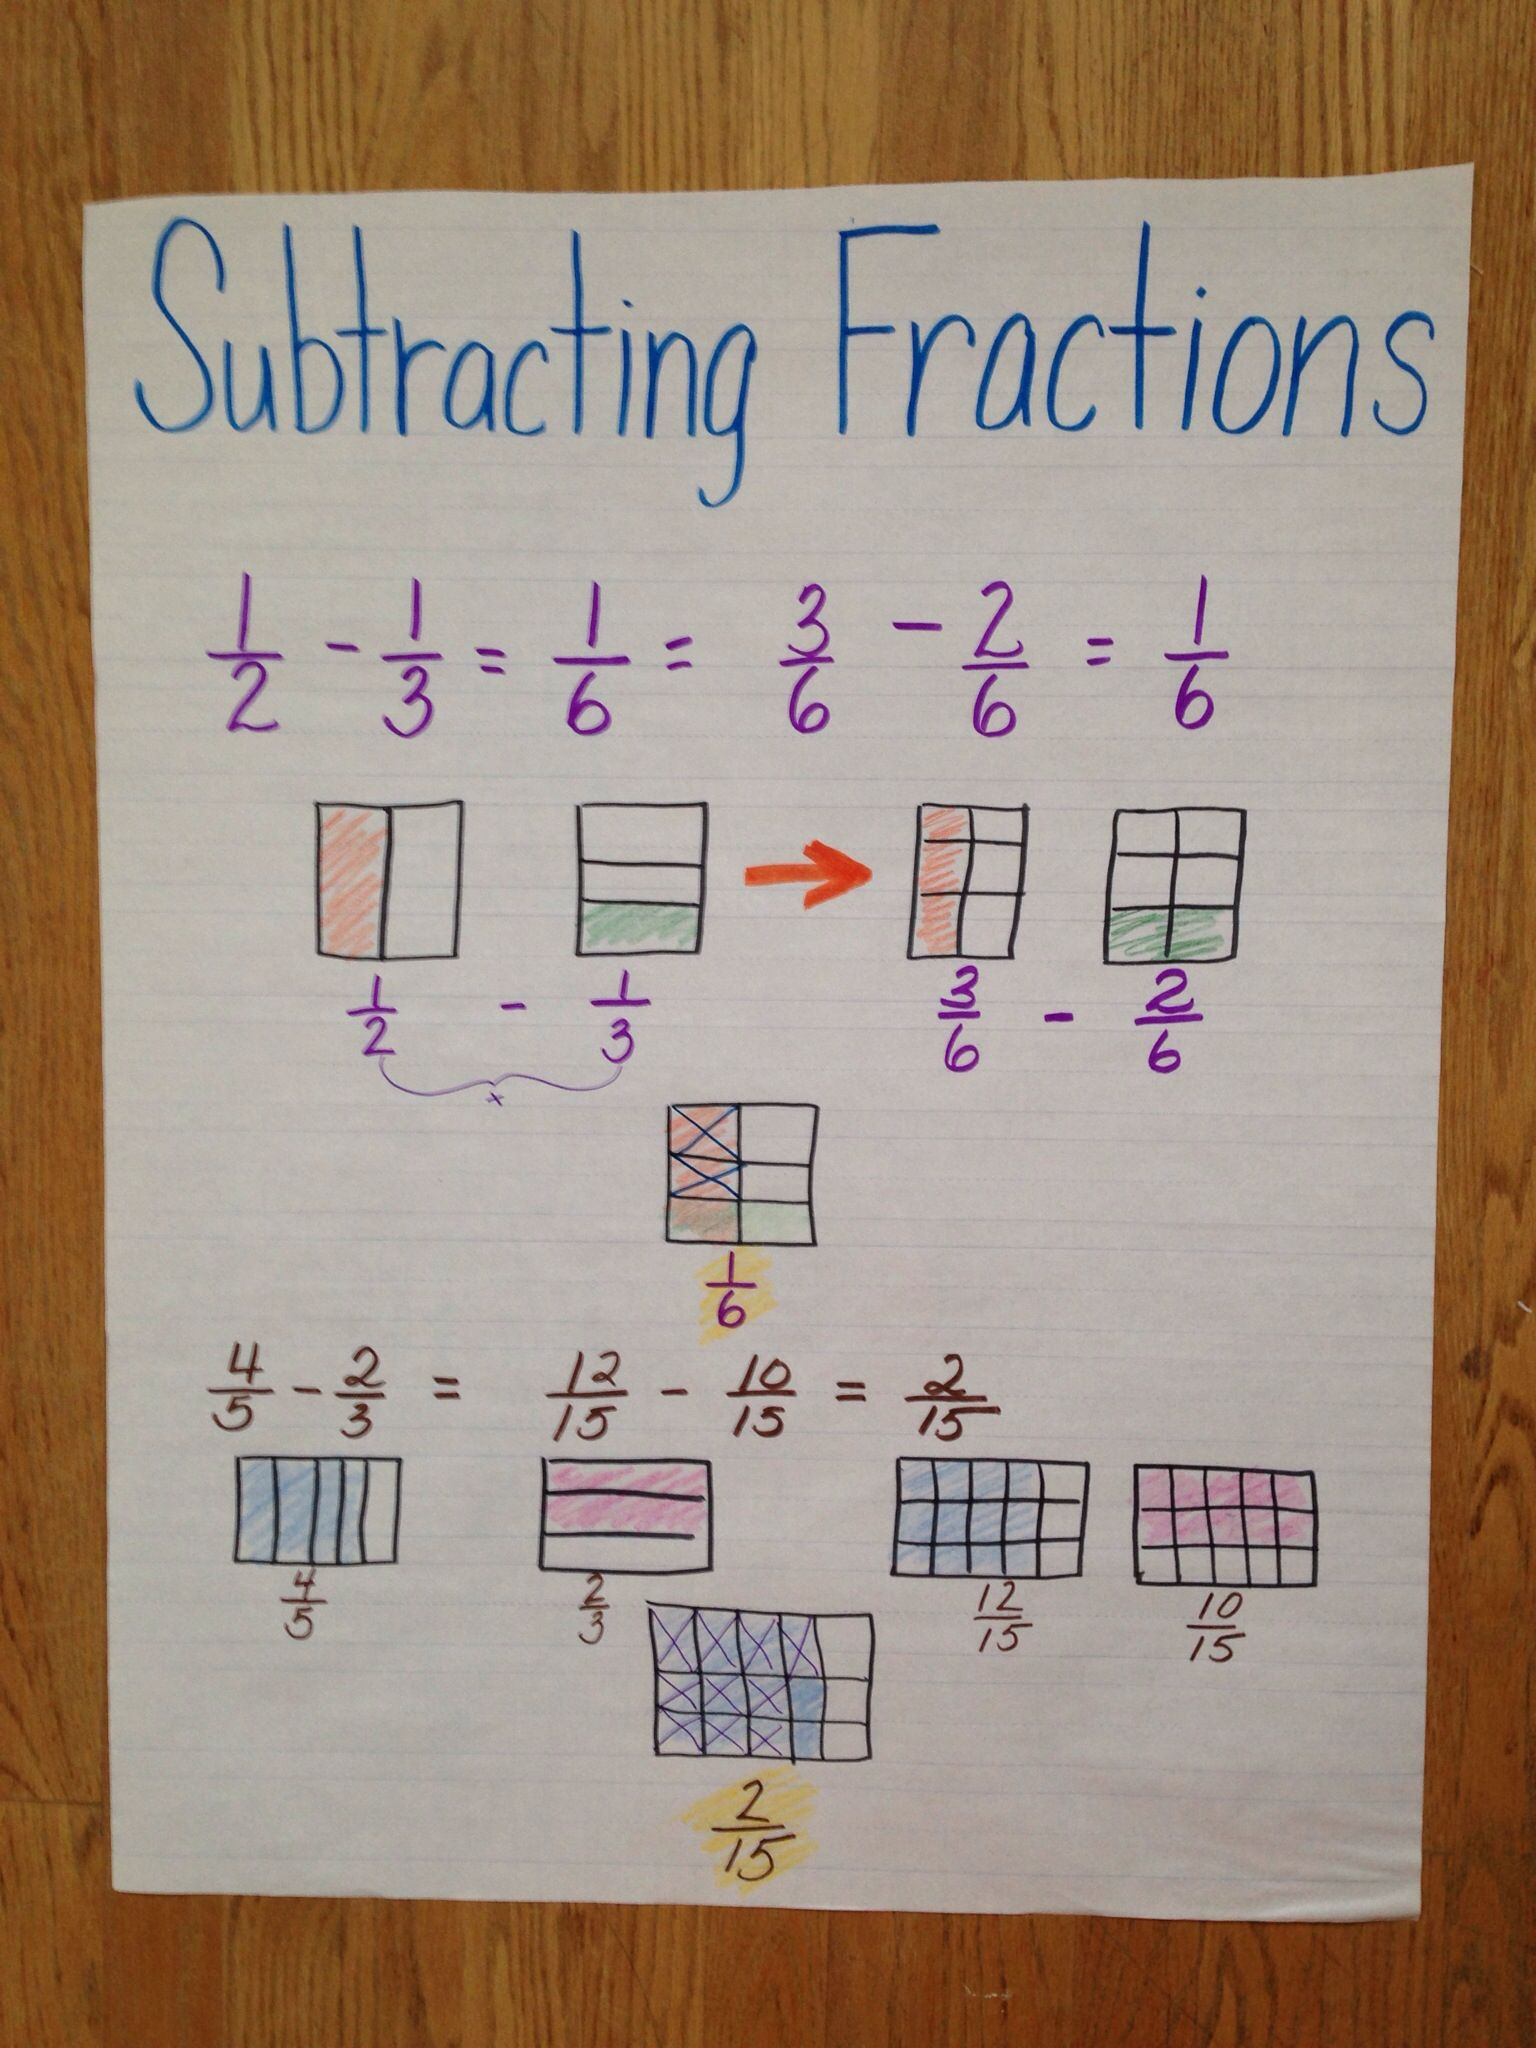 Subtracting Fractions 5th Grade Anchor Chart Common Core Engage Ny